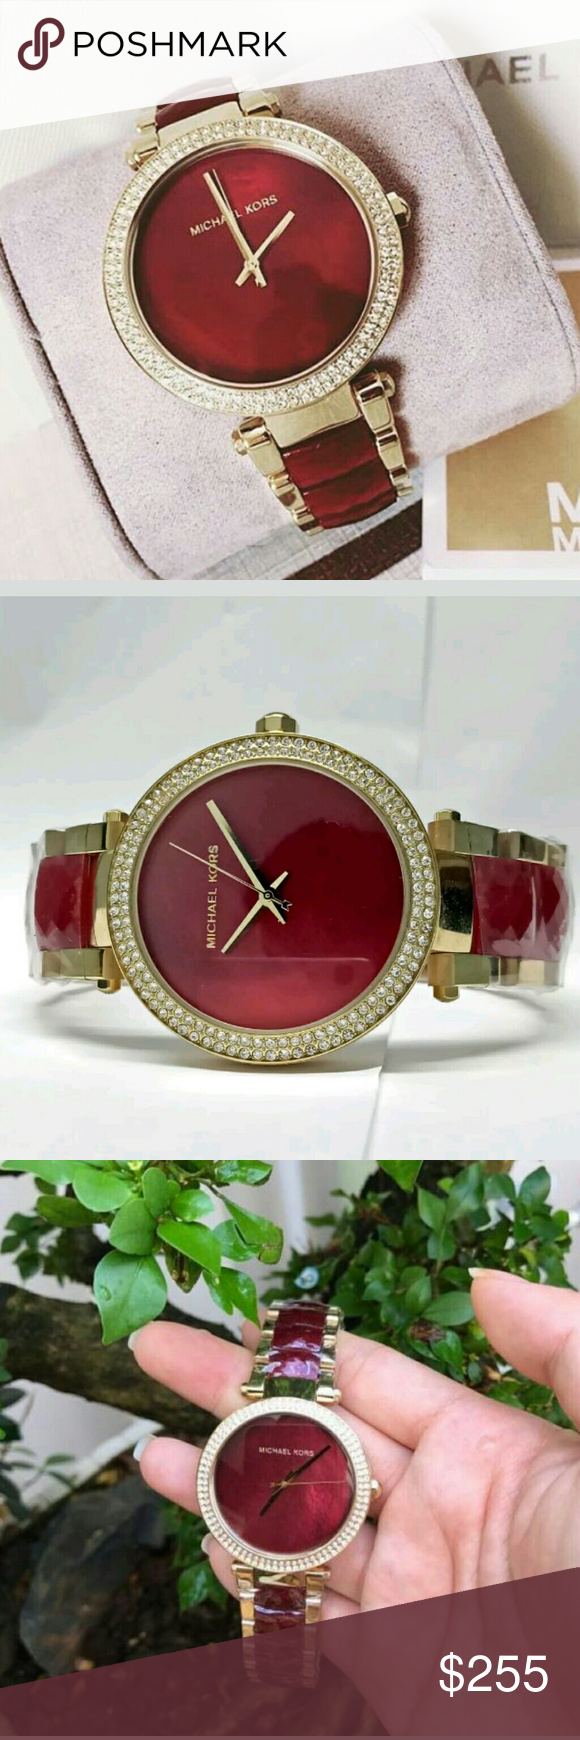 3c62684e5dae Brand new Michael Kors Choronograph ladies watch New Michael Kors Parker  Red Choronograph and Gold Women s Watch FIRM PRICE  255.00 . AUTHENTIC  WATCH .